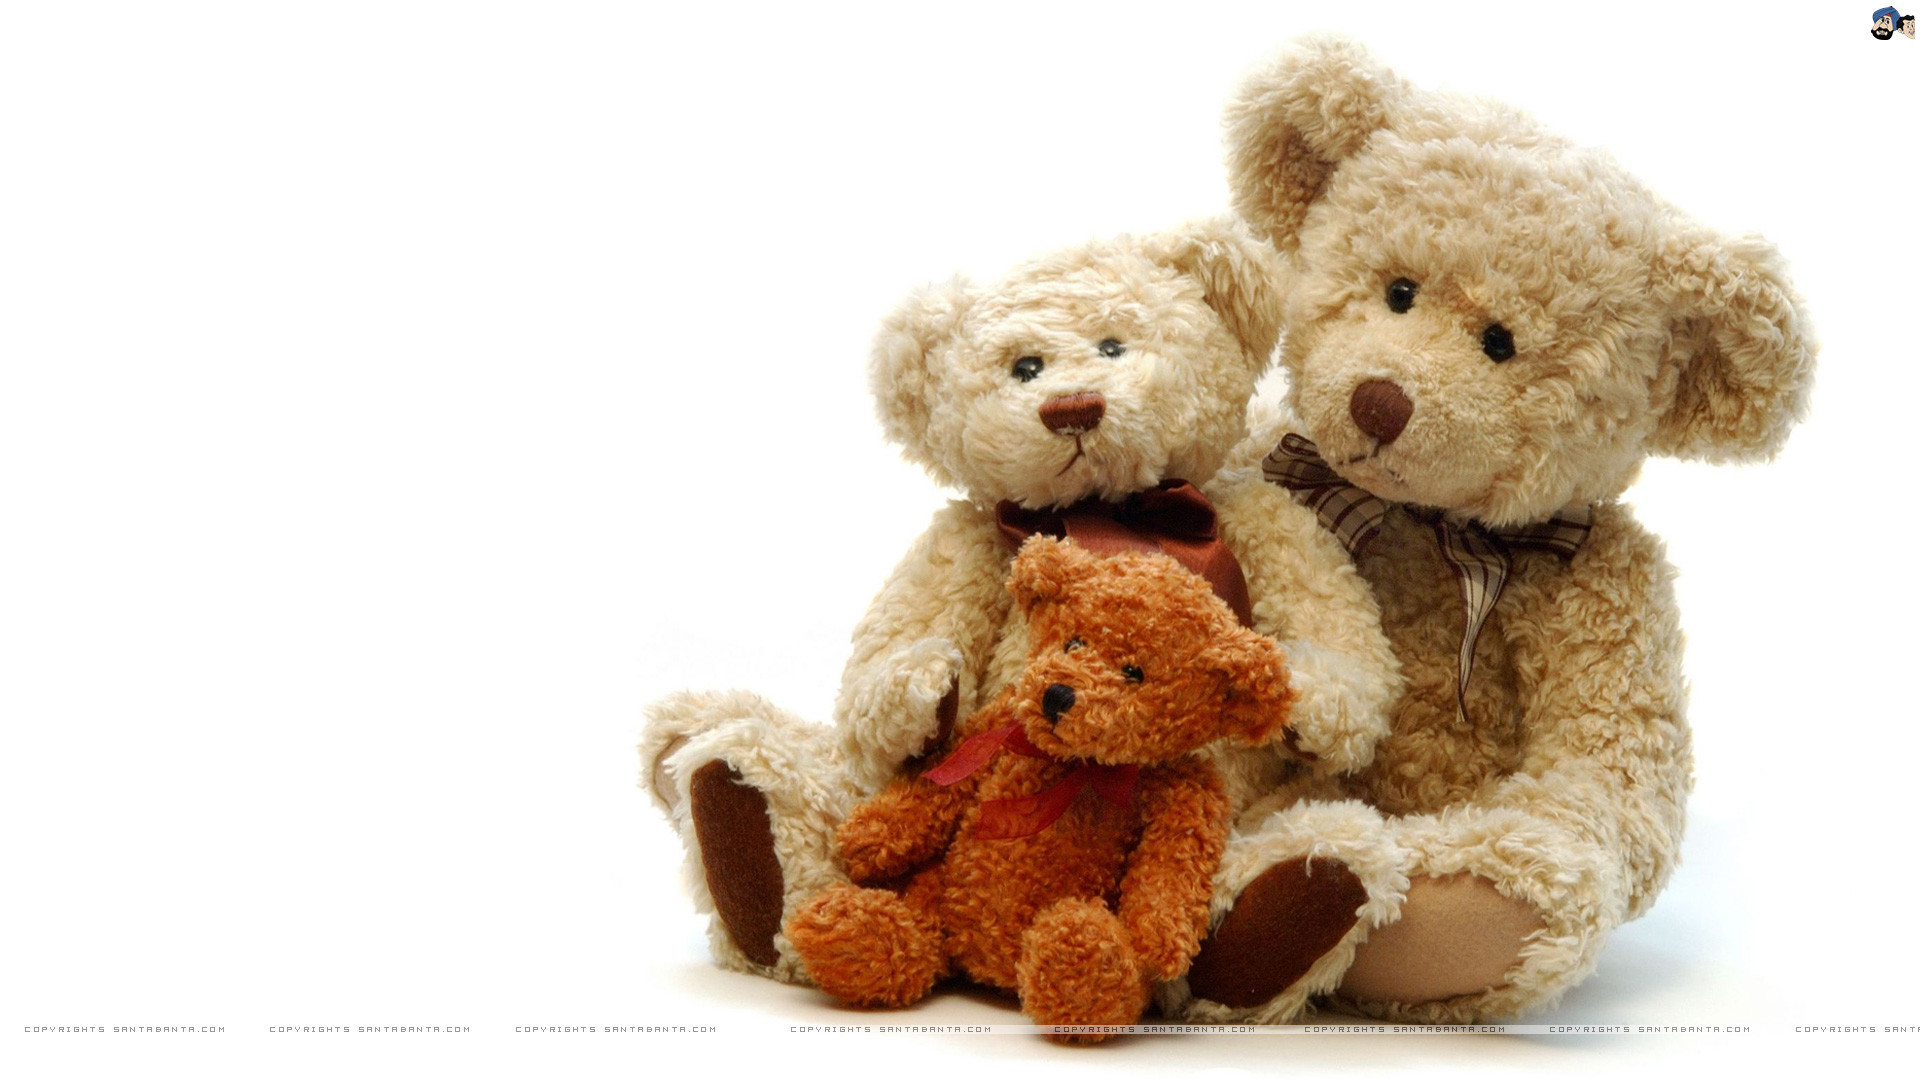 Teddy Bear Wallpaper And Screensavers (65+ Images